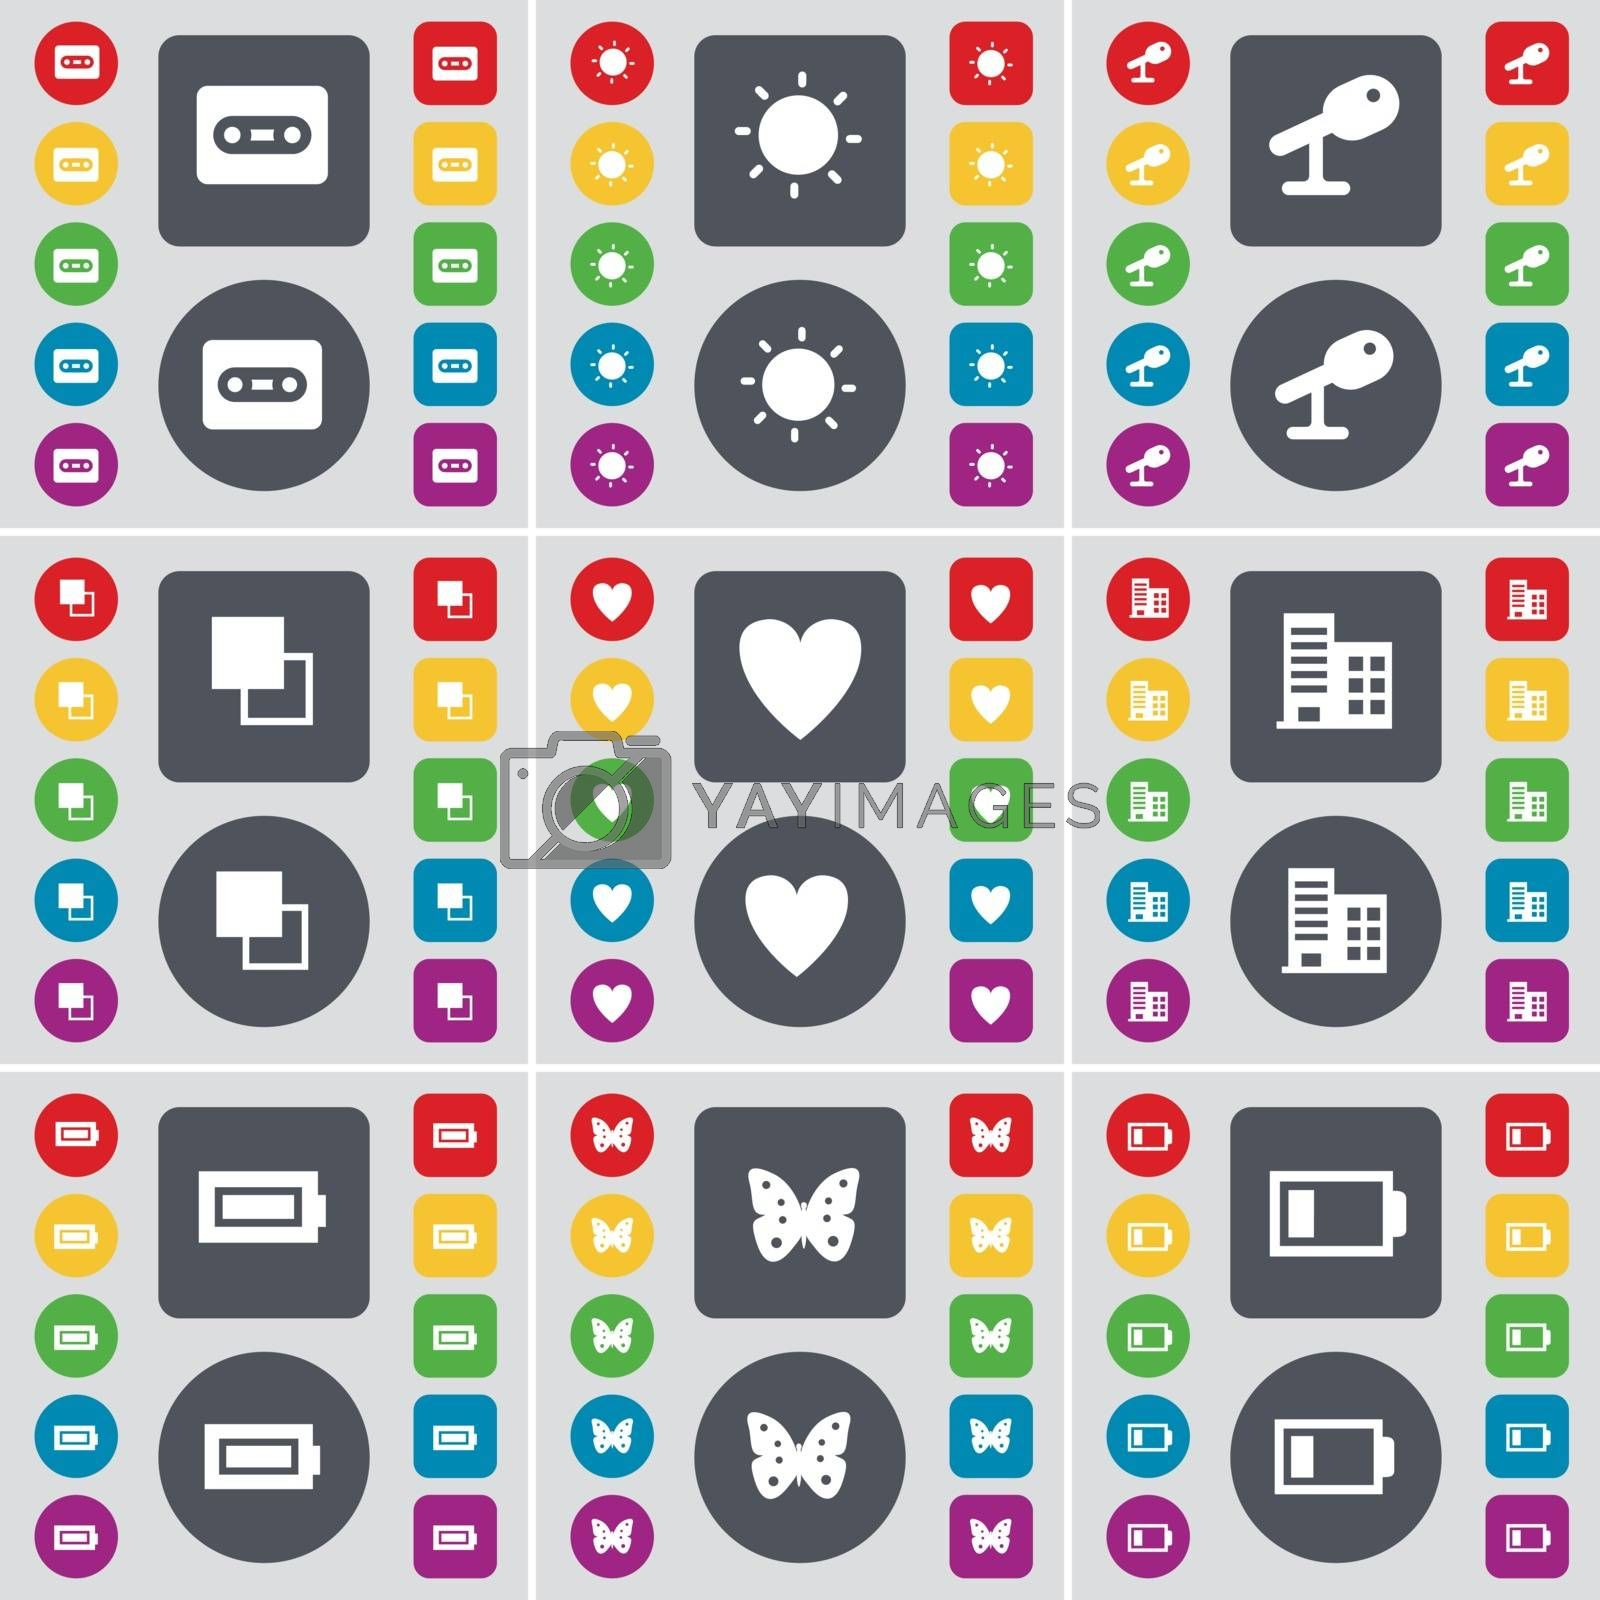 Royalty free image of Cassette, Light, Microphone, Copy, Heart, Building, Battery, Butterfly icon symbol. A large set of flat, colored buttons for your design. Vector by serhii_lohvyniuk